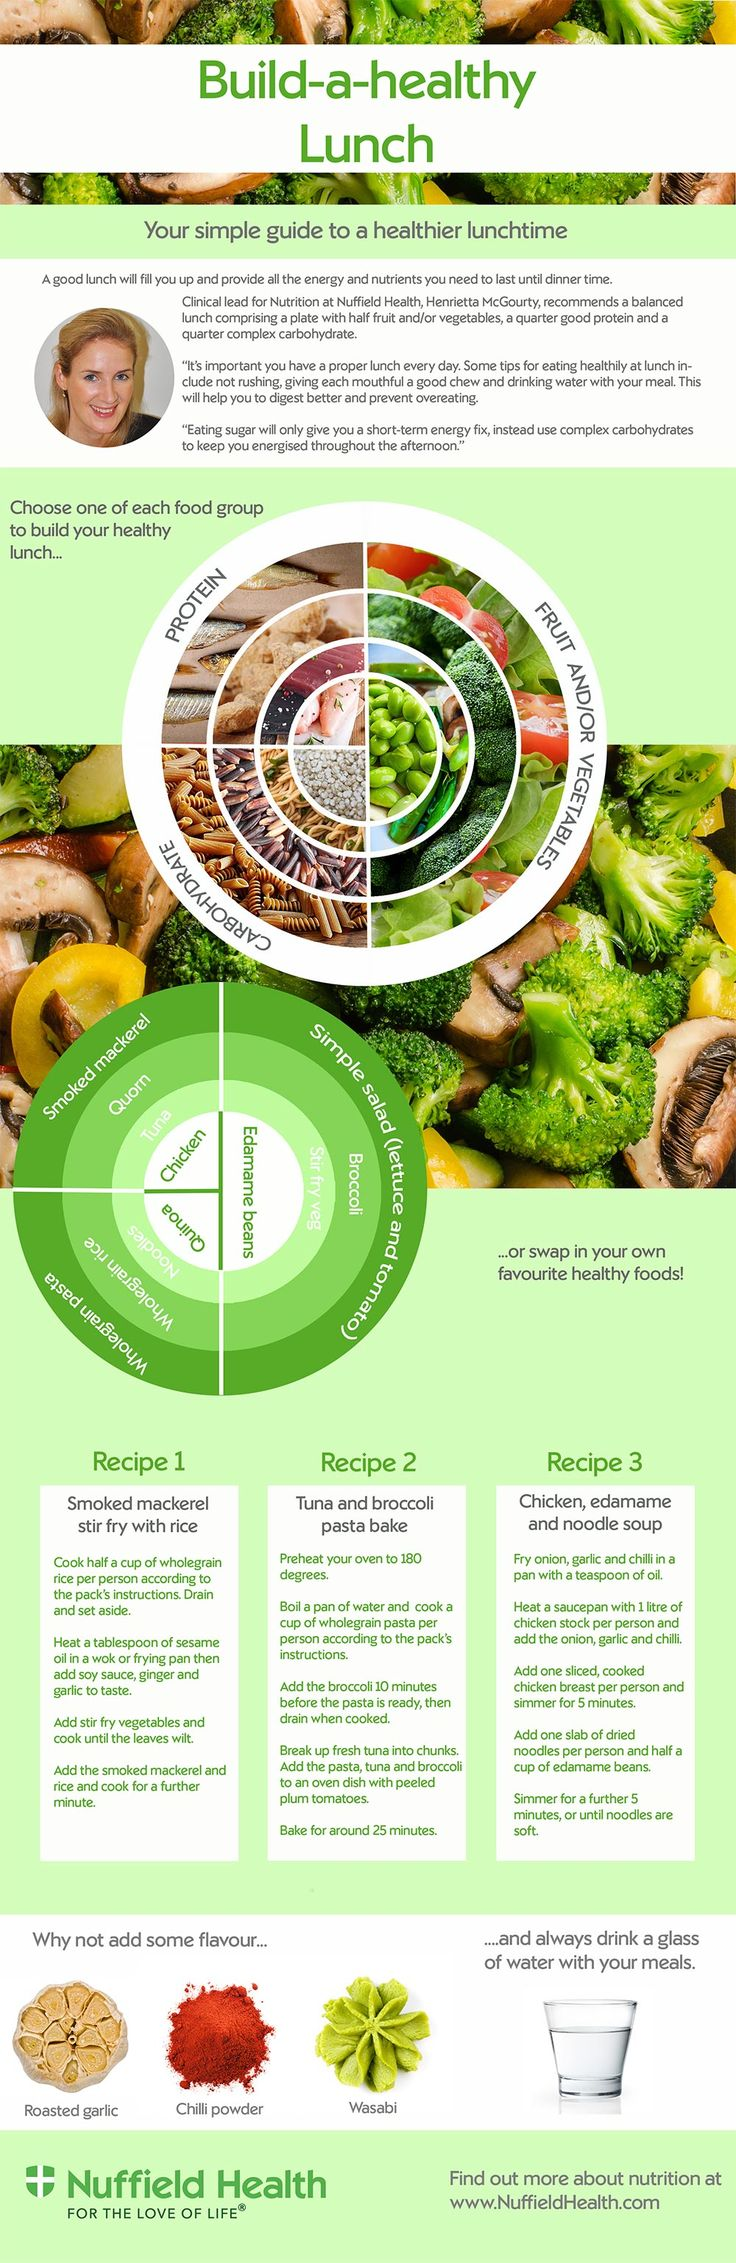 Build a healthy lunch infographic